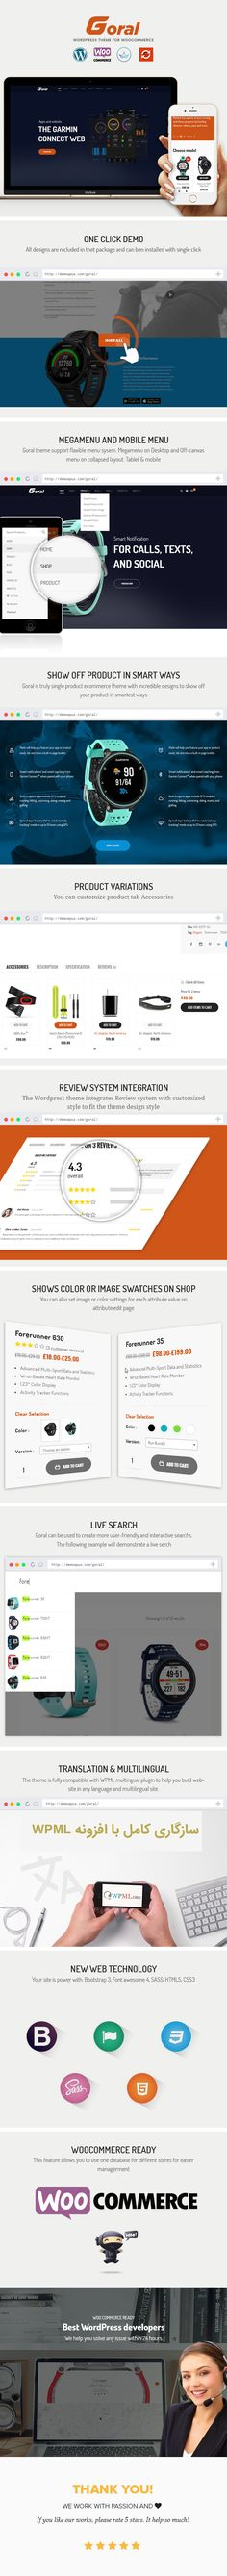 Goral SmartWatch - Single product Woocommerce WordPress Theme #single product #smartwatch #SmartWatch Theme • Download ➝ https://themeforest.net/item/gramin-smartwatch-single-product-woocommerce-wordpress-theme/19162897?ref=pxcr